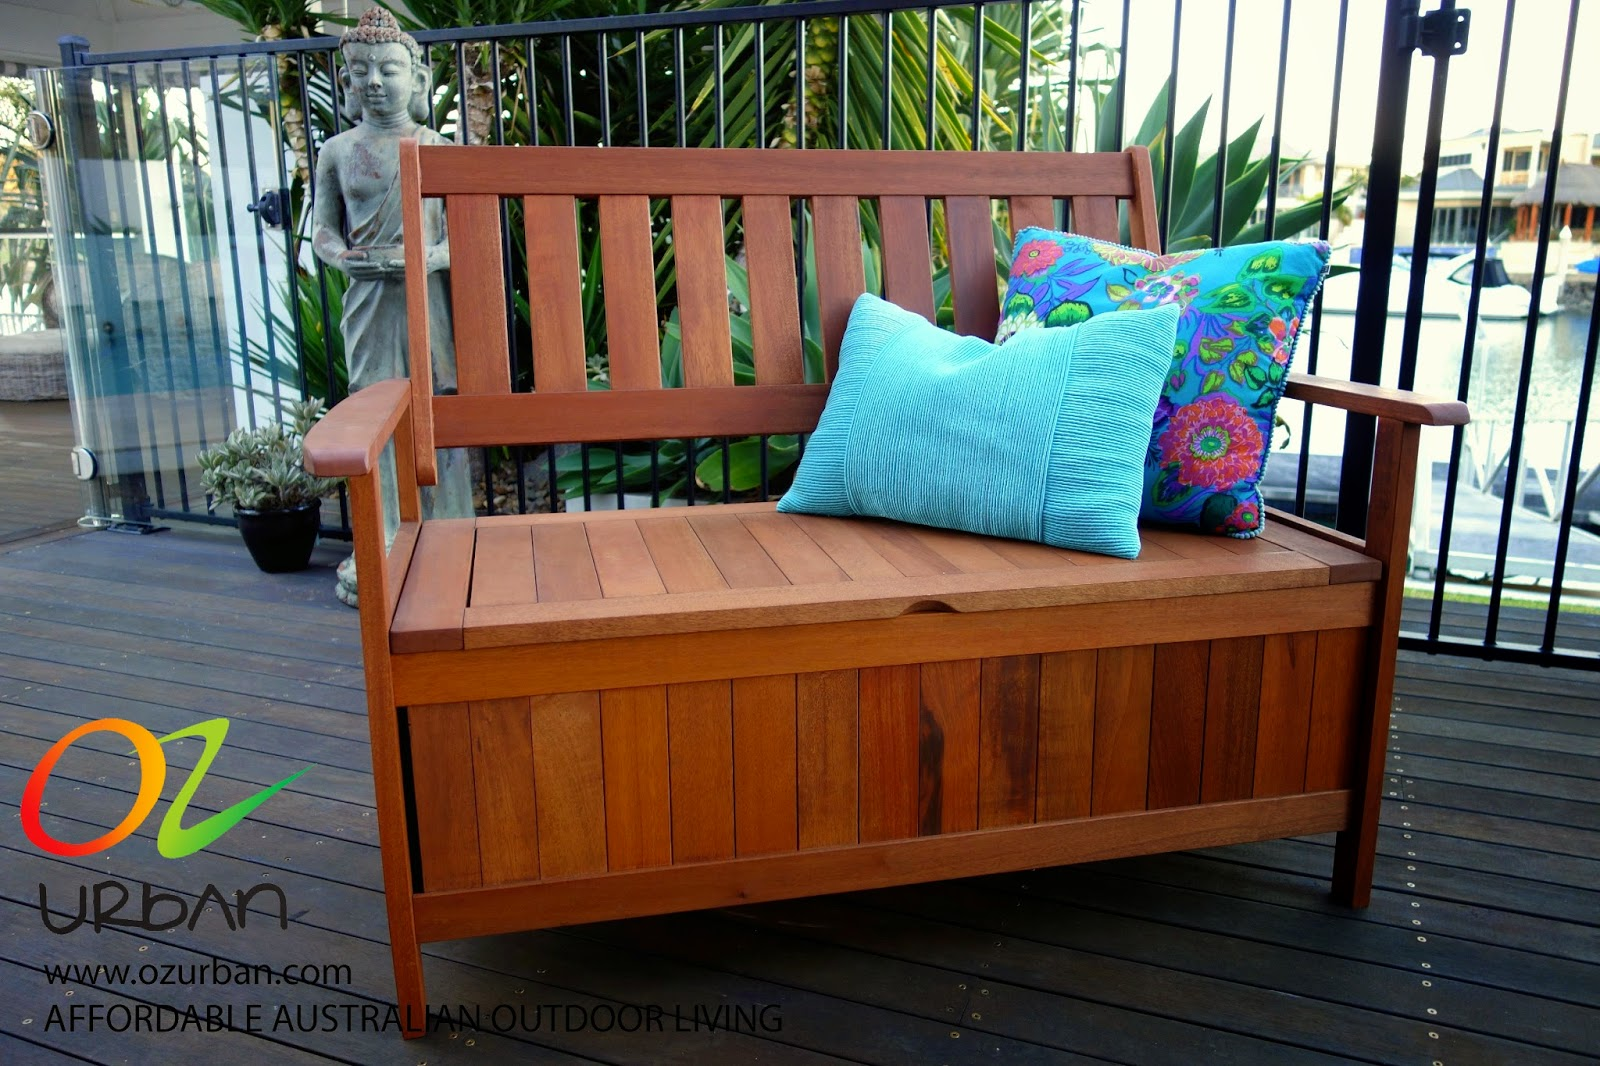 Outdoor Furniture Settings Discounts And Sales Ozurban